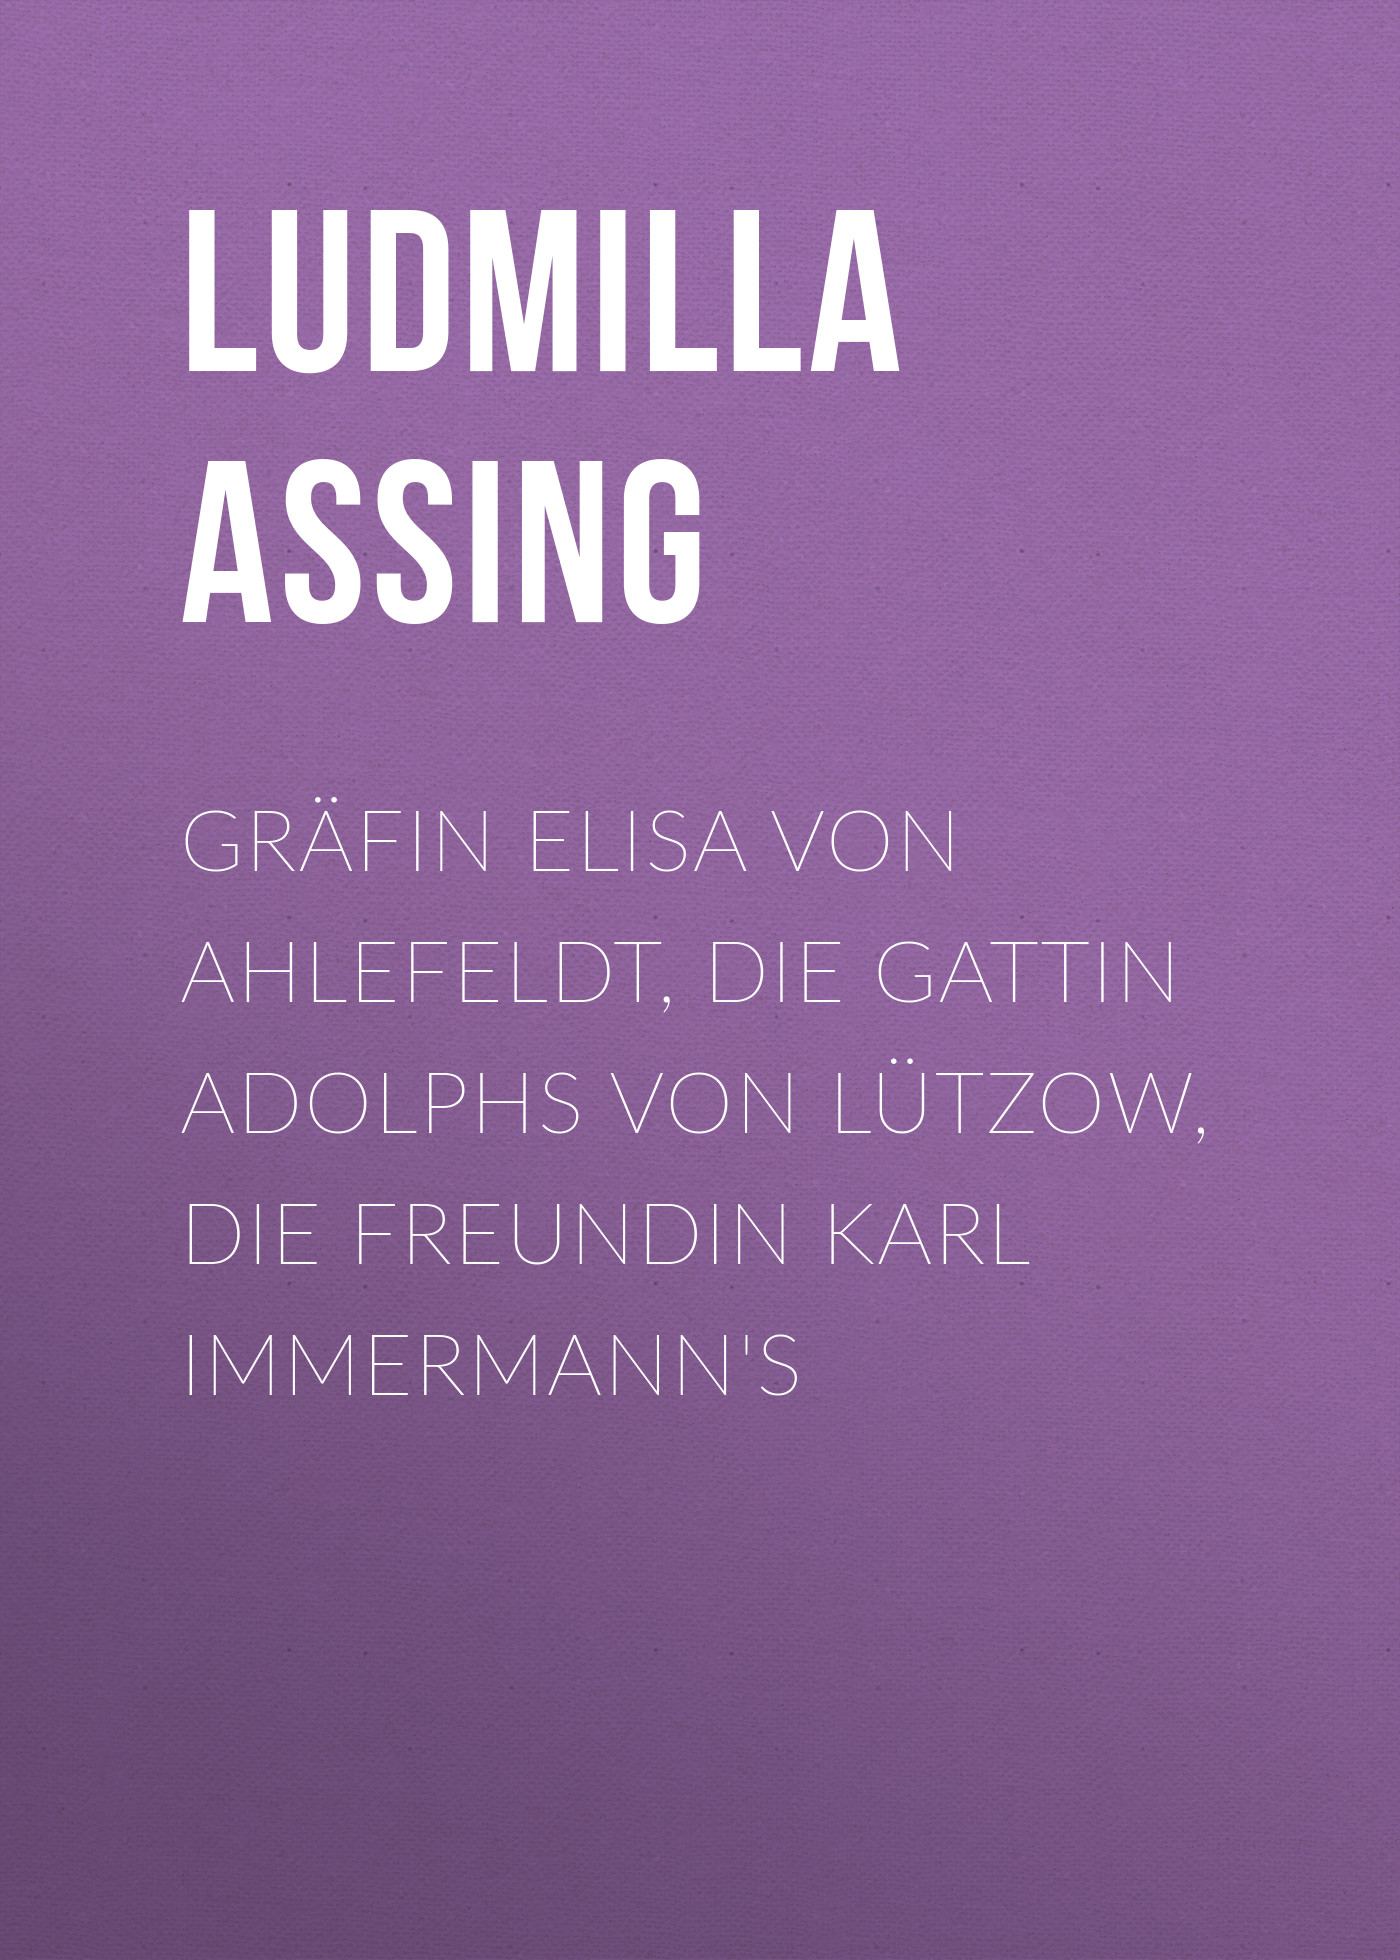 Assing Ludmilla Gräfin Elisa von Ahlefeldt, die Gattin Adolphs von Lützow, die Freundin Karl Immermann's free shipping of 1pc alloy steel made right hand manual die 2 16 un die threading tools lathe model engineer thread maker